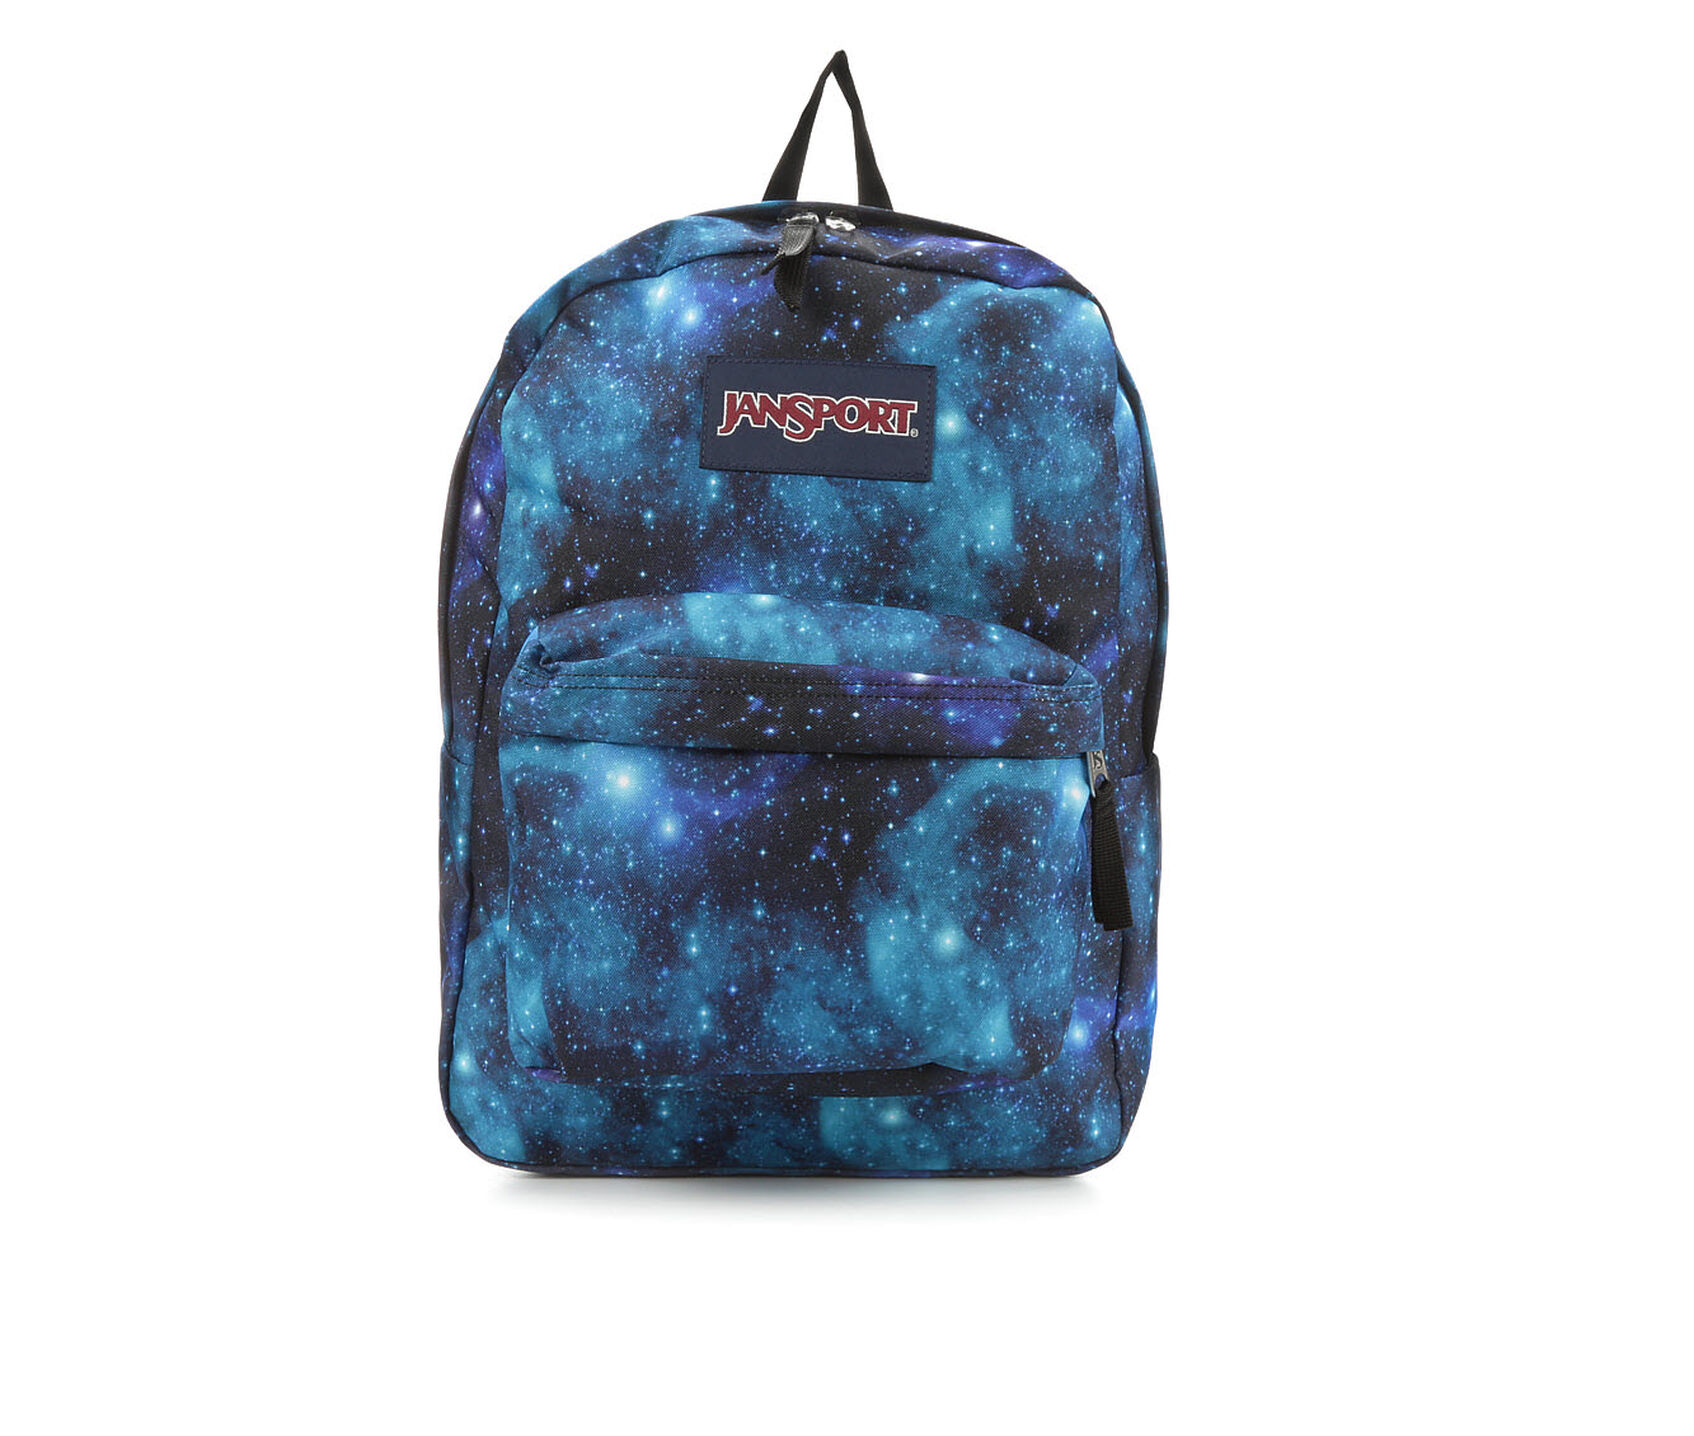 Turquoise Backpack Jansport- Fenix Toulouse Handball fb69588d37934